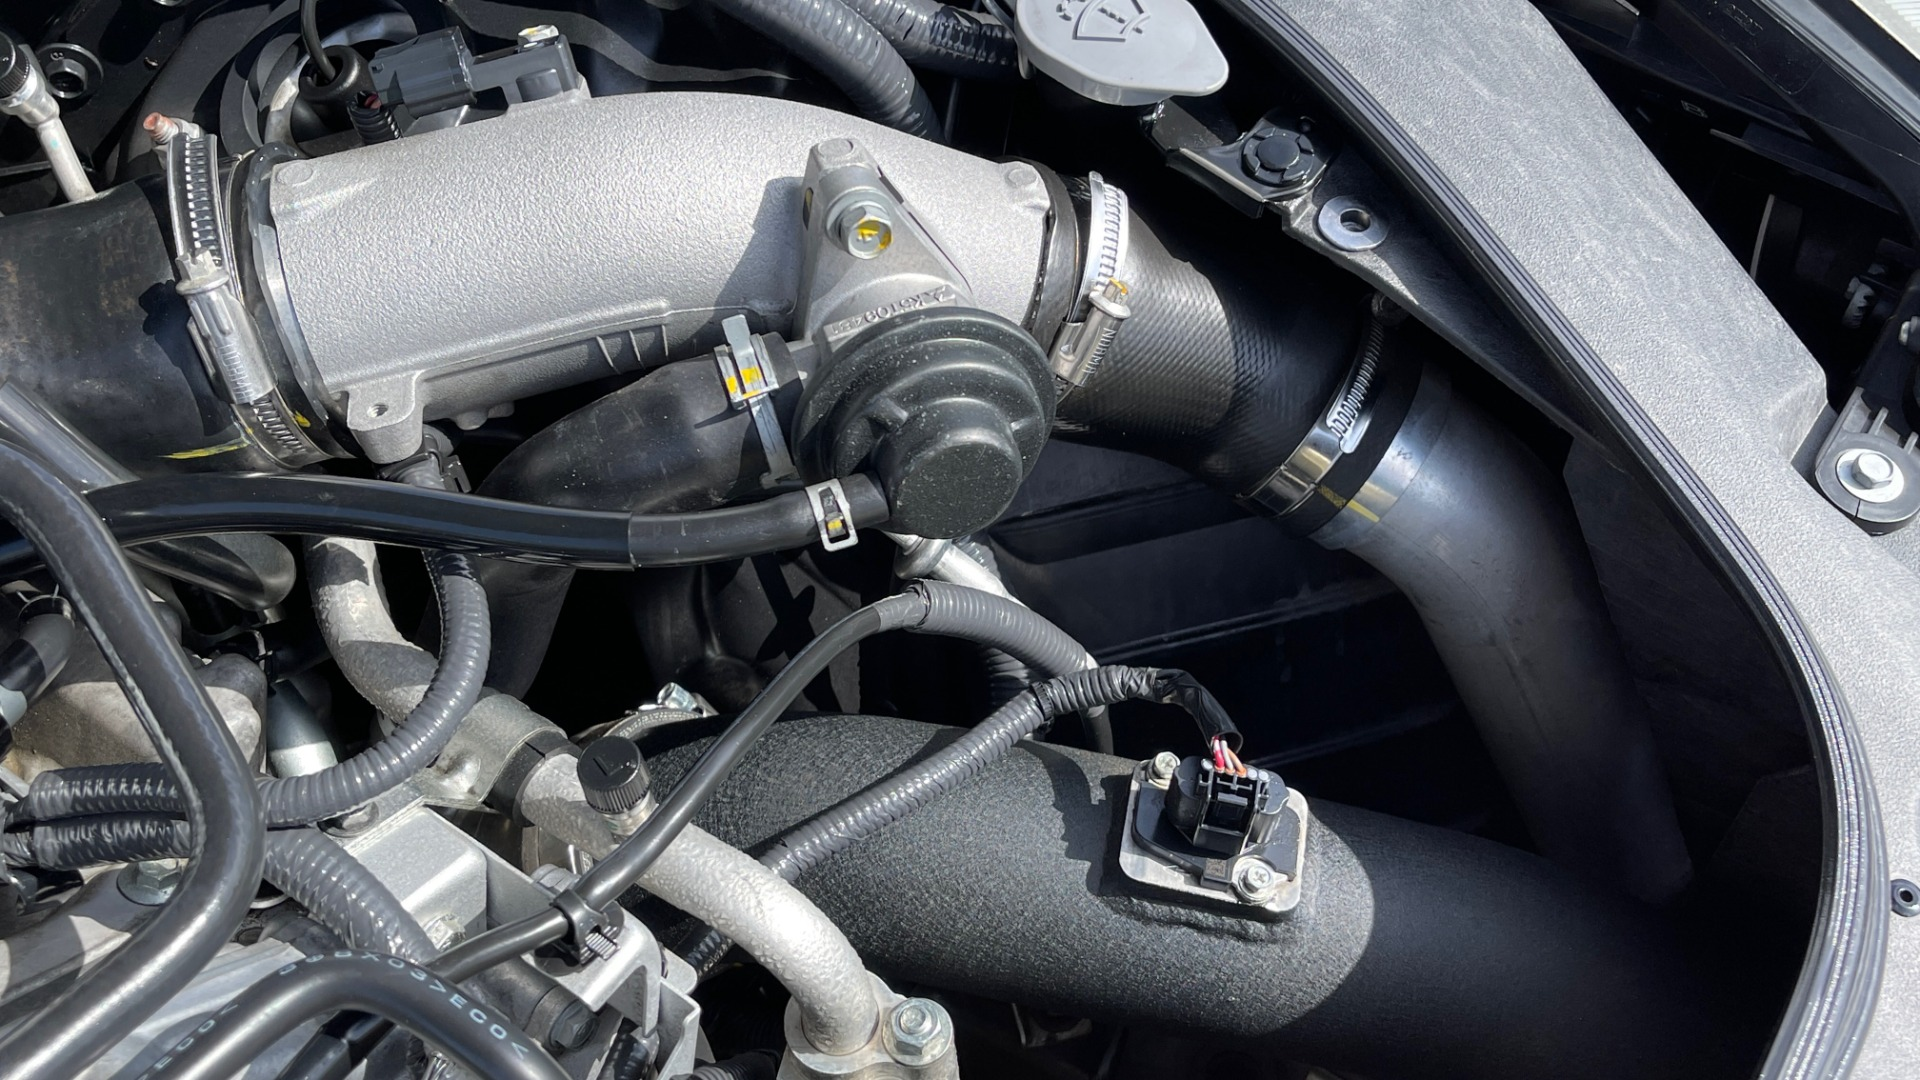 Used 2009 Nissan GT-R PREMIUM COUPE / AWD / TT 3.8L V6 / NAV / BOSE / BREMBO for sale $64,999 at Formula Imports in Charlotte NC 28227 87